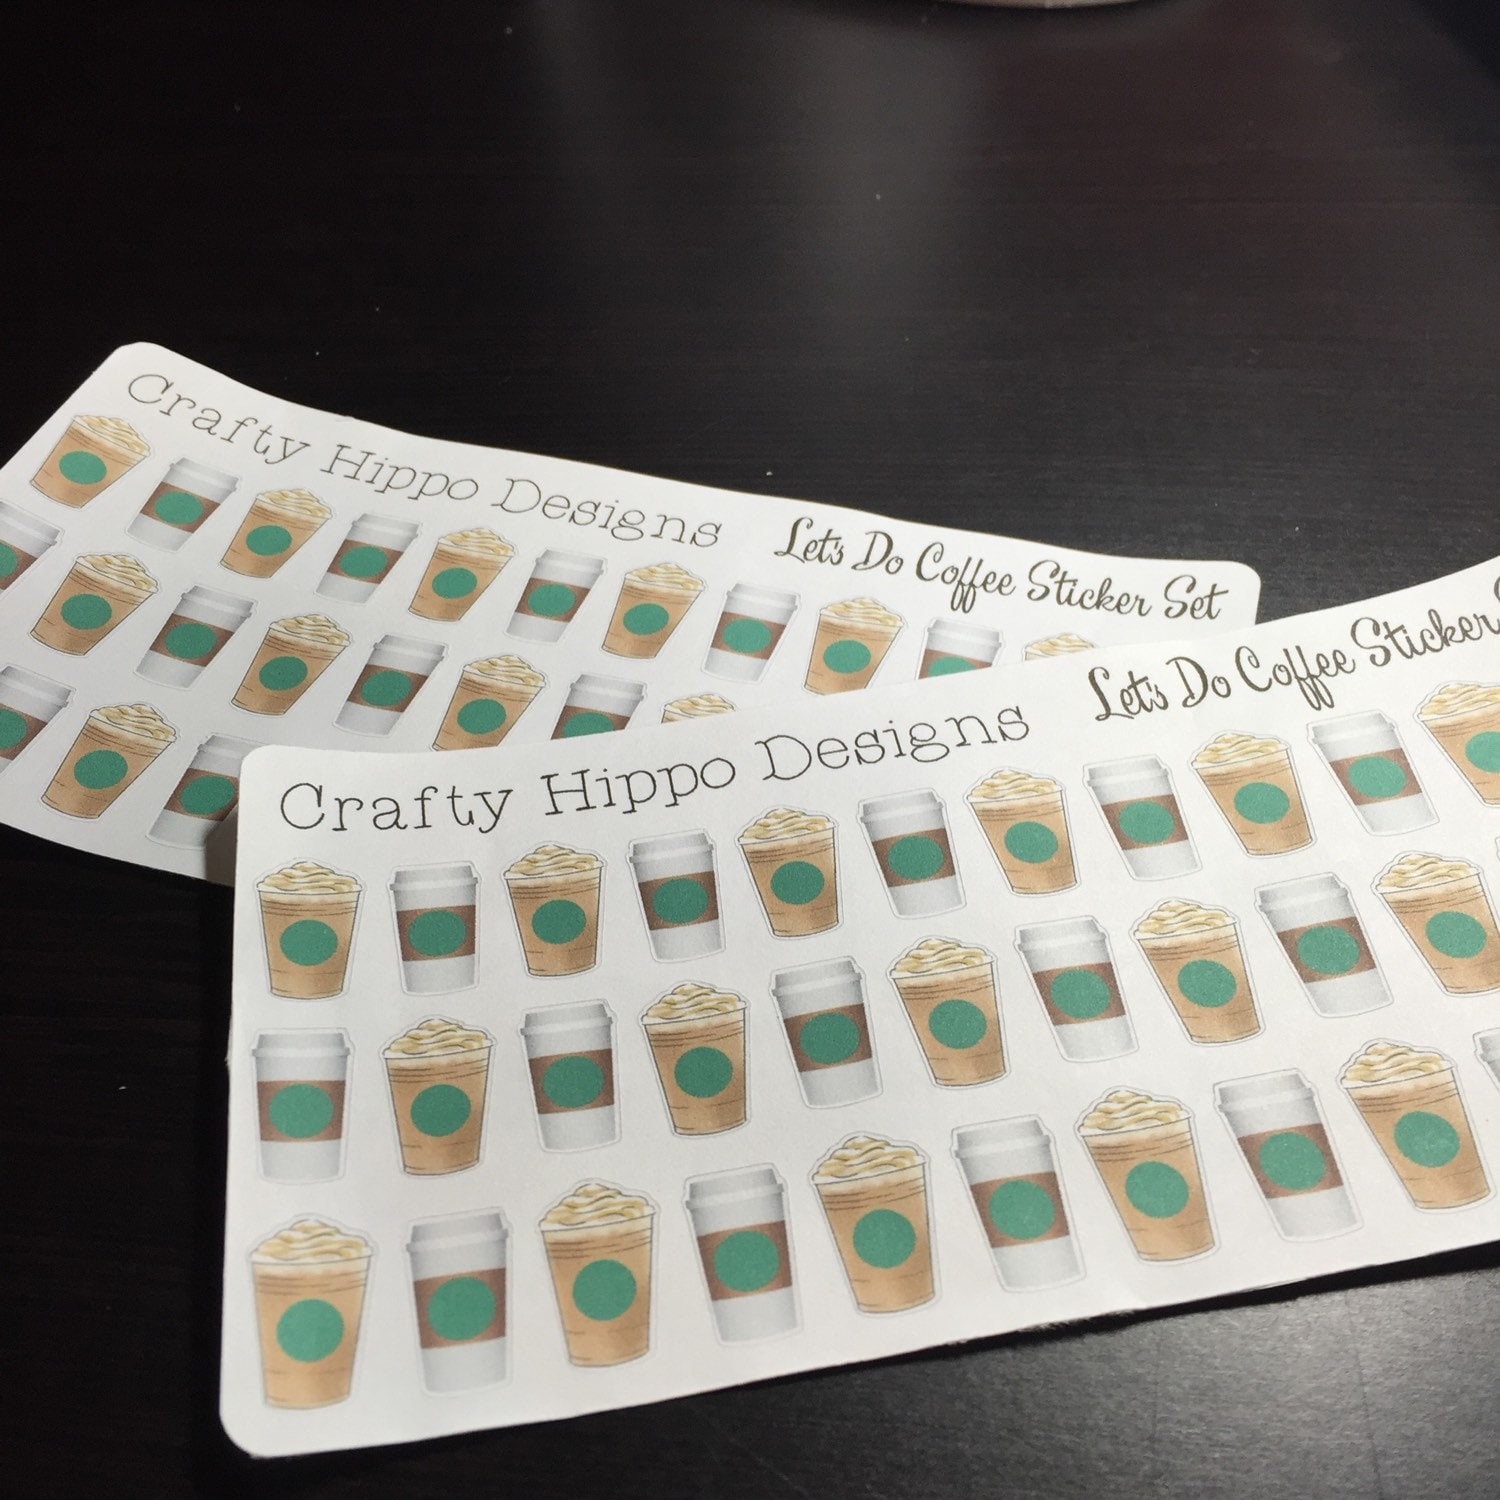 Let S Do Coffee Planner Stickers From Craftyhippodesigns